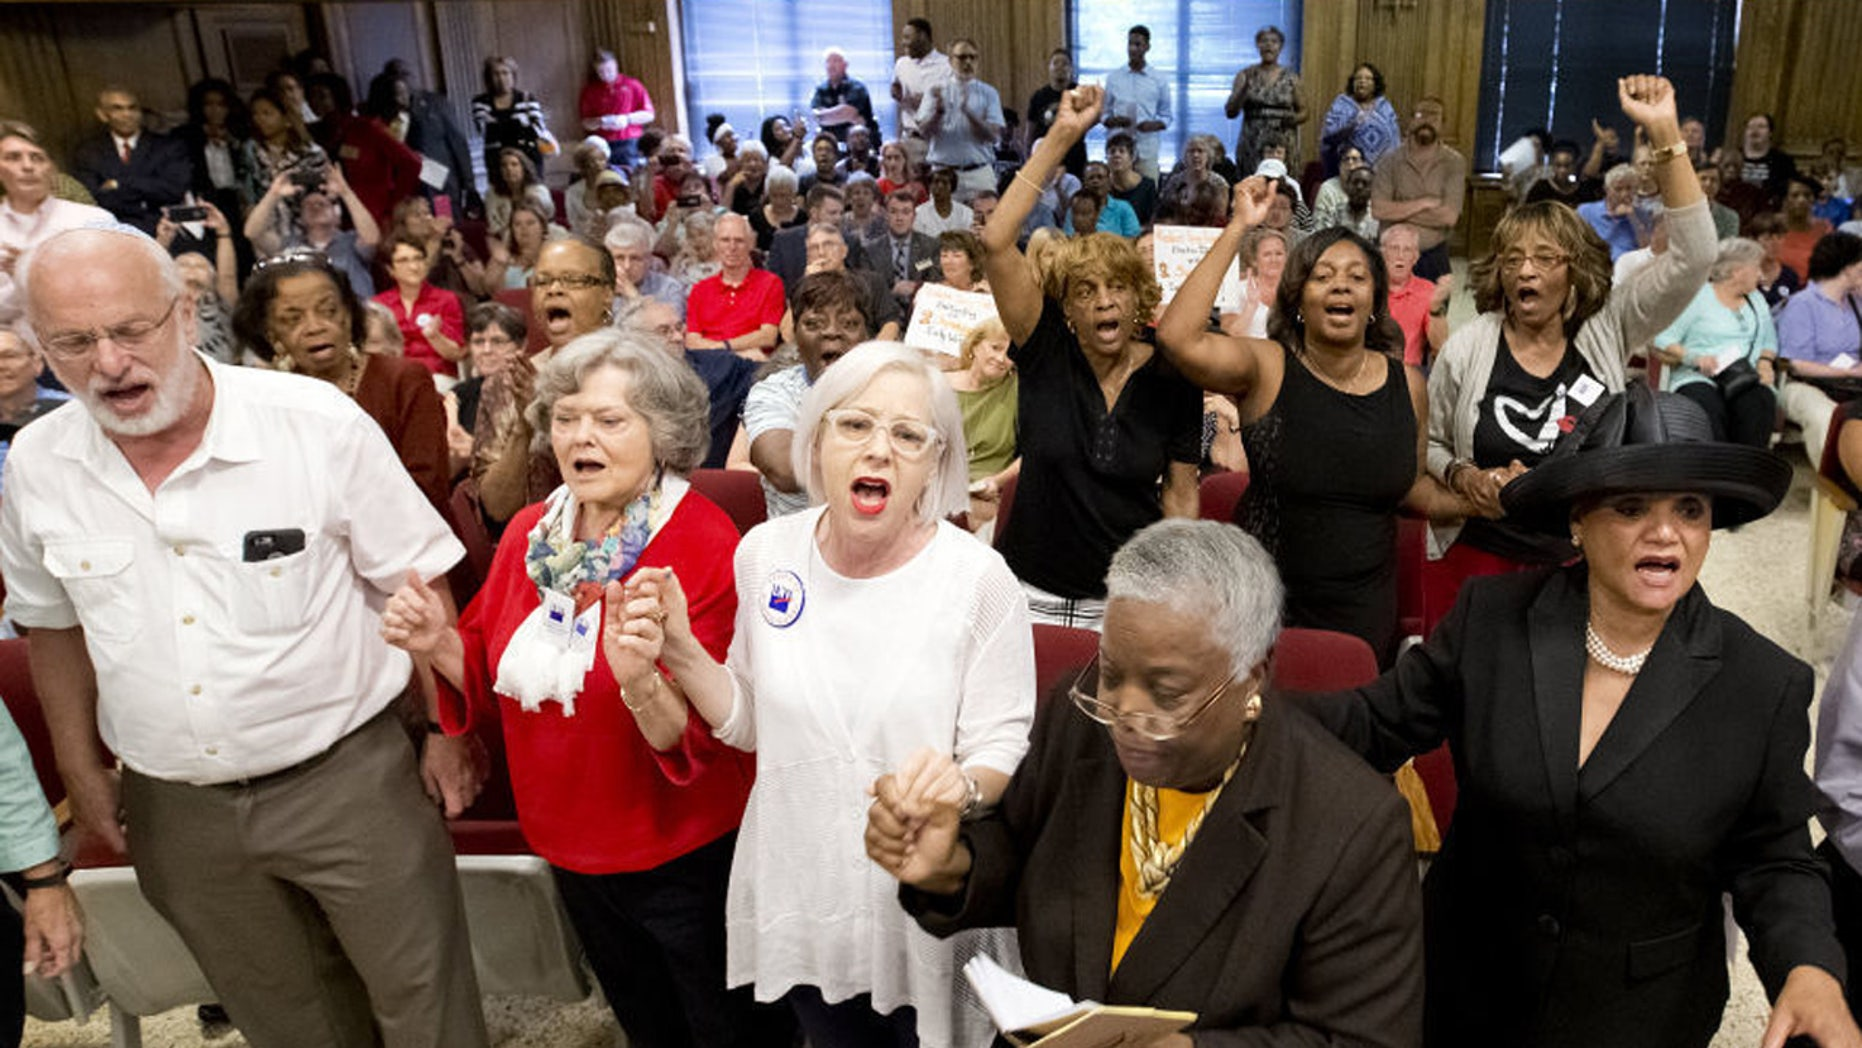 In this Aug. 9, 2016 file photo, people rise and begin singing during the Guilford County Board of Elections meeting at the Old Guilford County Courthouse in Greensboro, N.C.